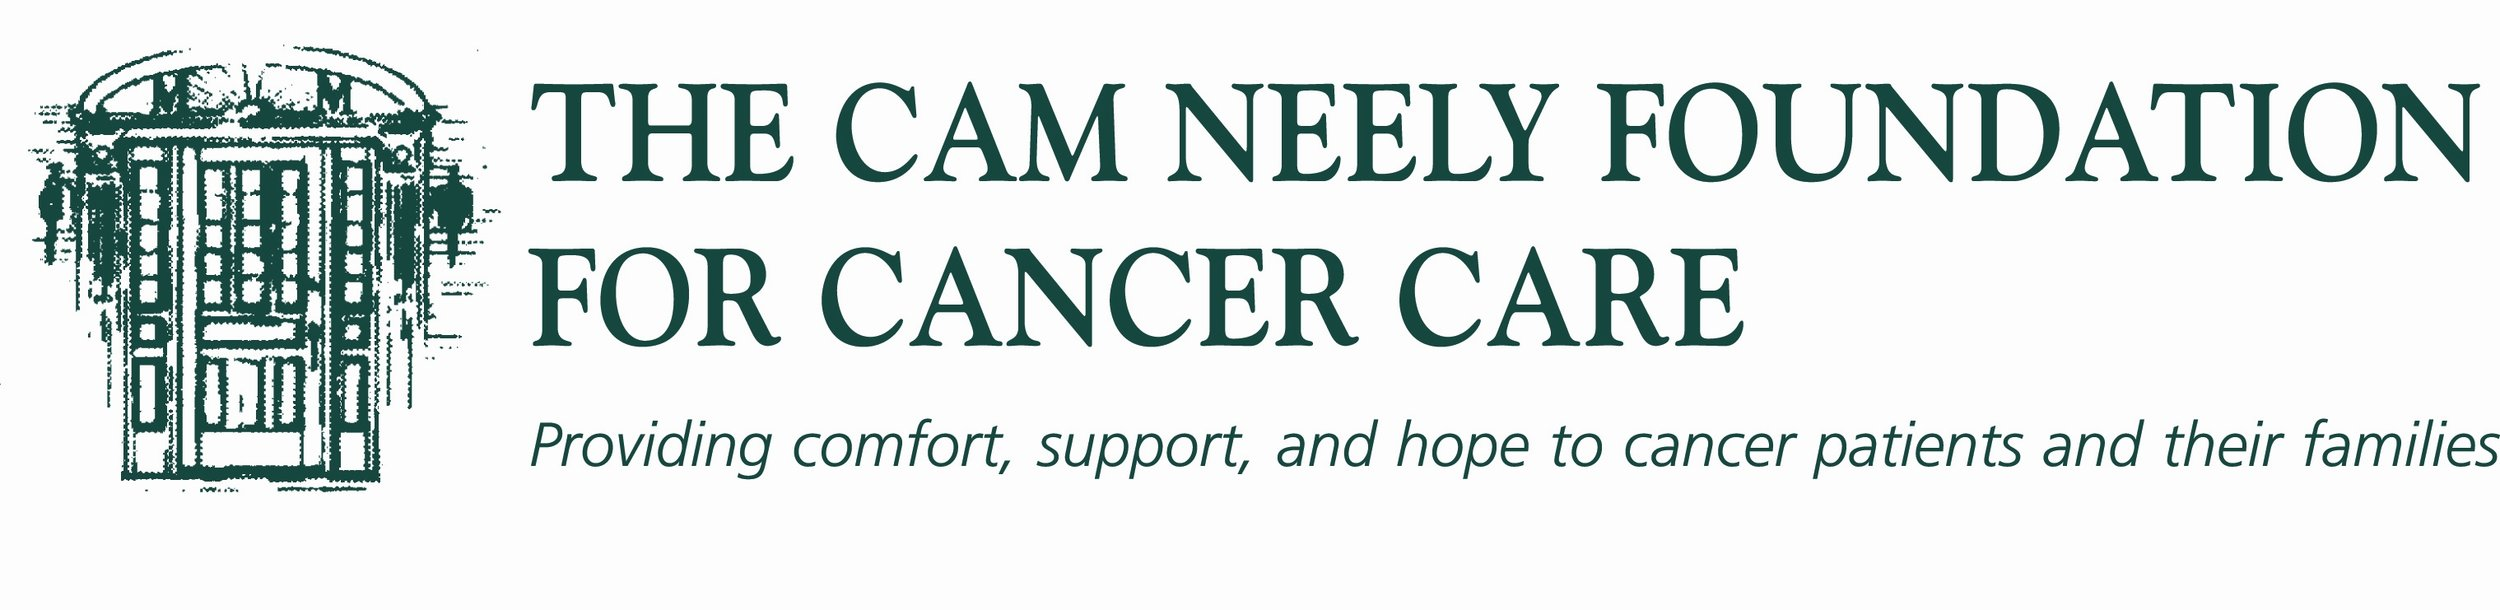 Neely Foundation.Color.JPG